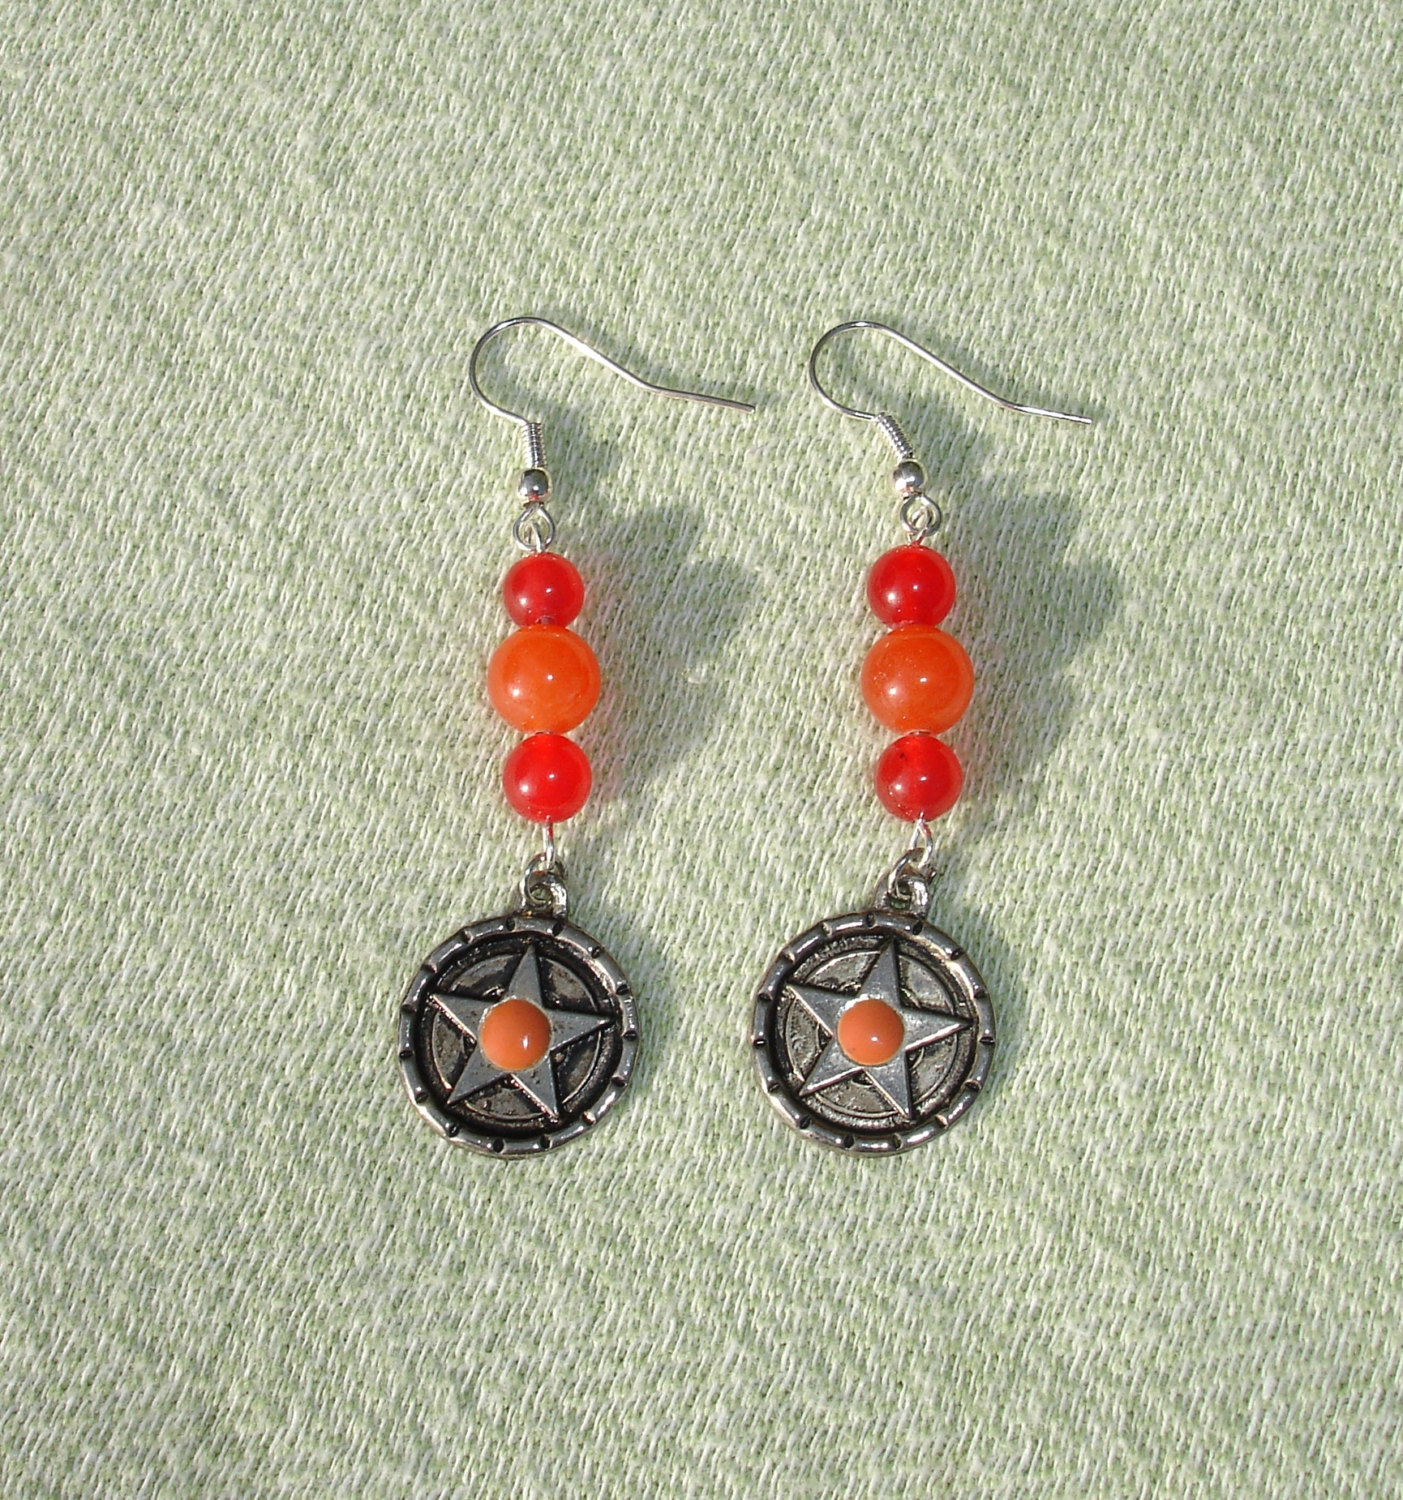 Handmade Red Gemstone and Witch Pentagram Dangle Earrings - Handcrafted Jewelry